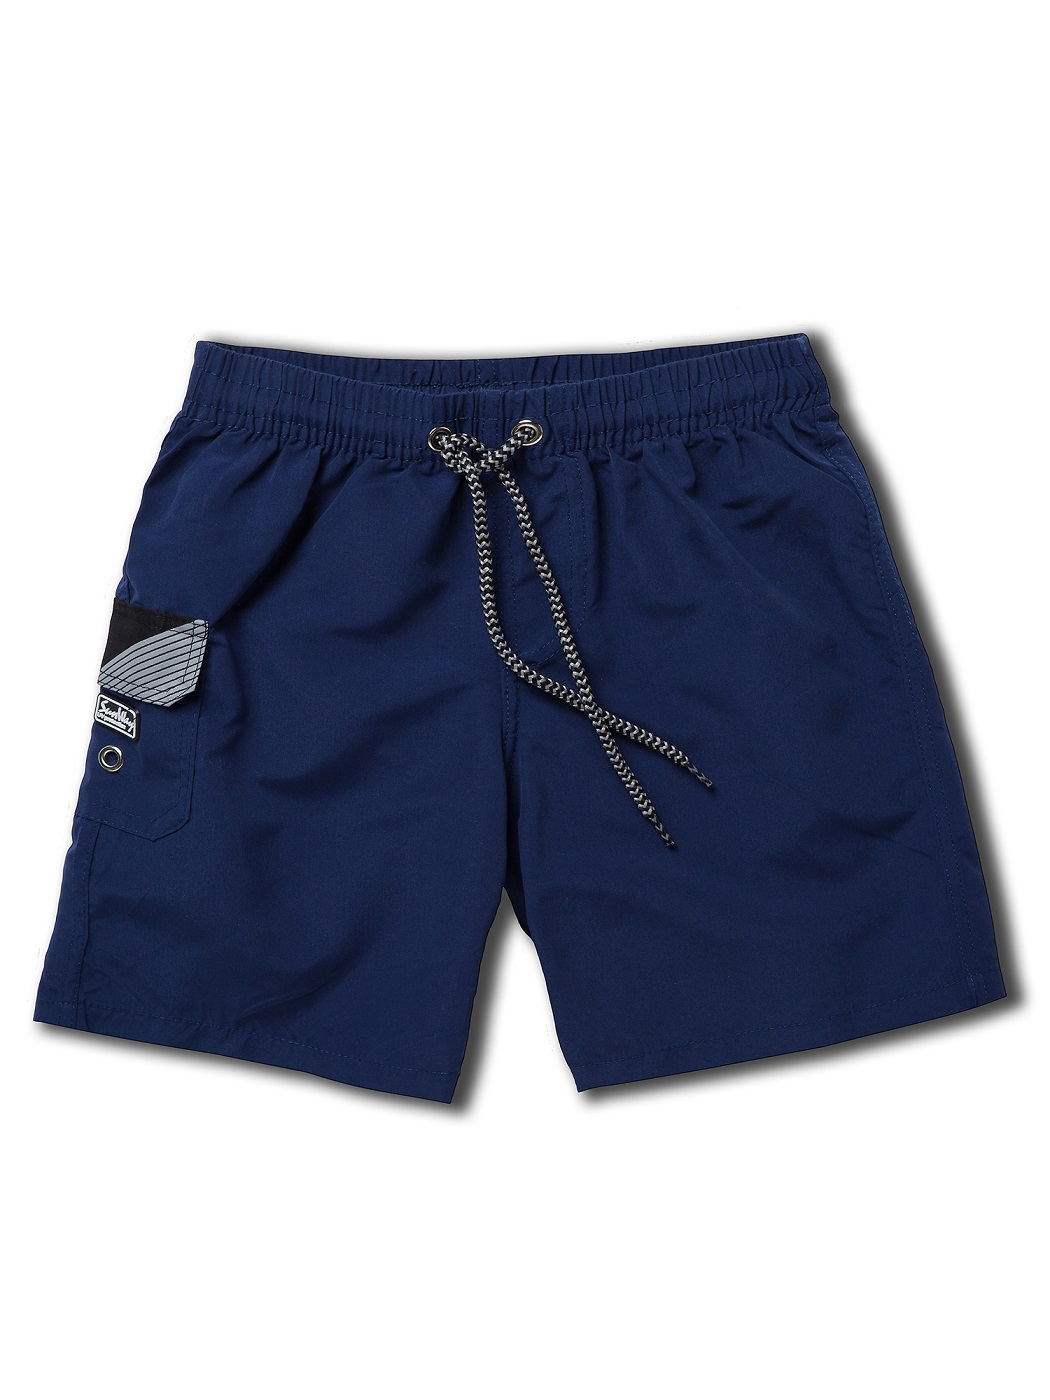 Men's solids colors boardshorts